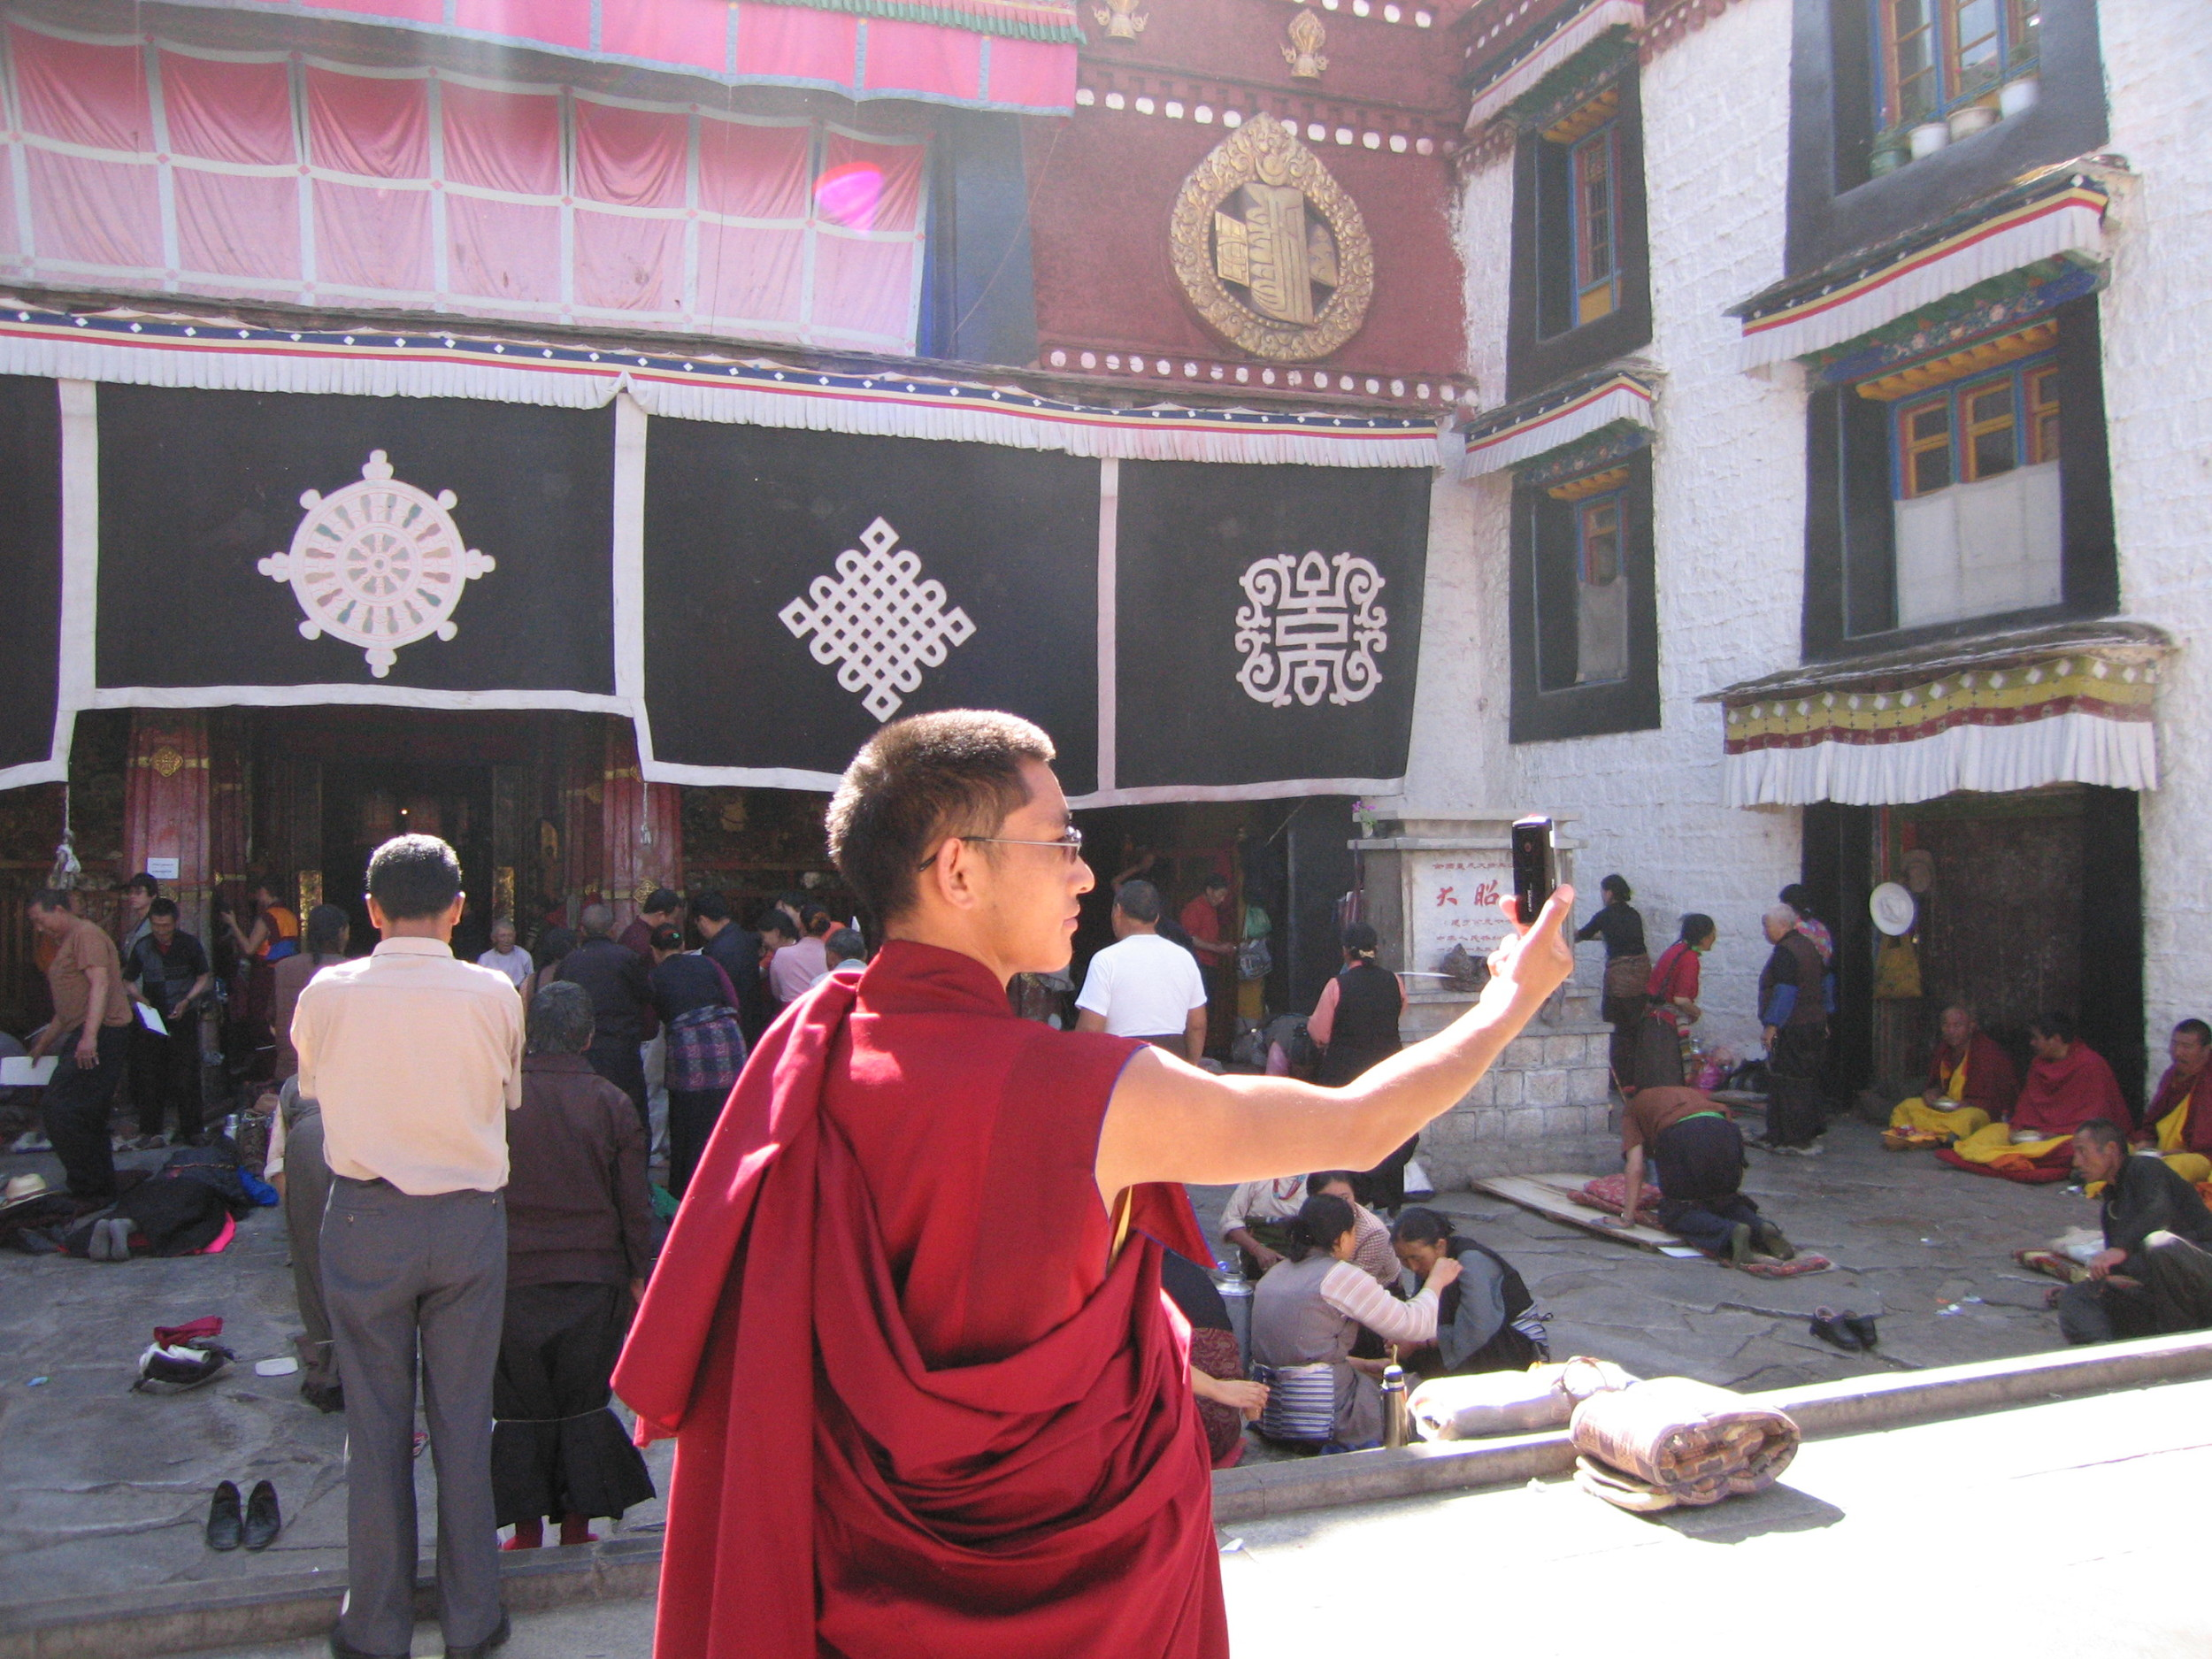 China / Tibet; Cultural, Political, Spiritual Geographies. 2007.